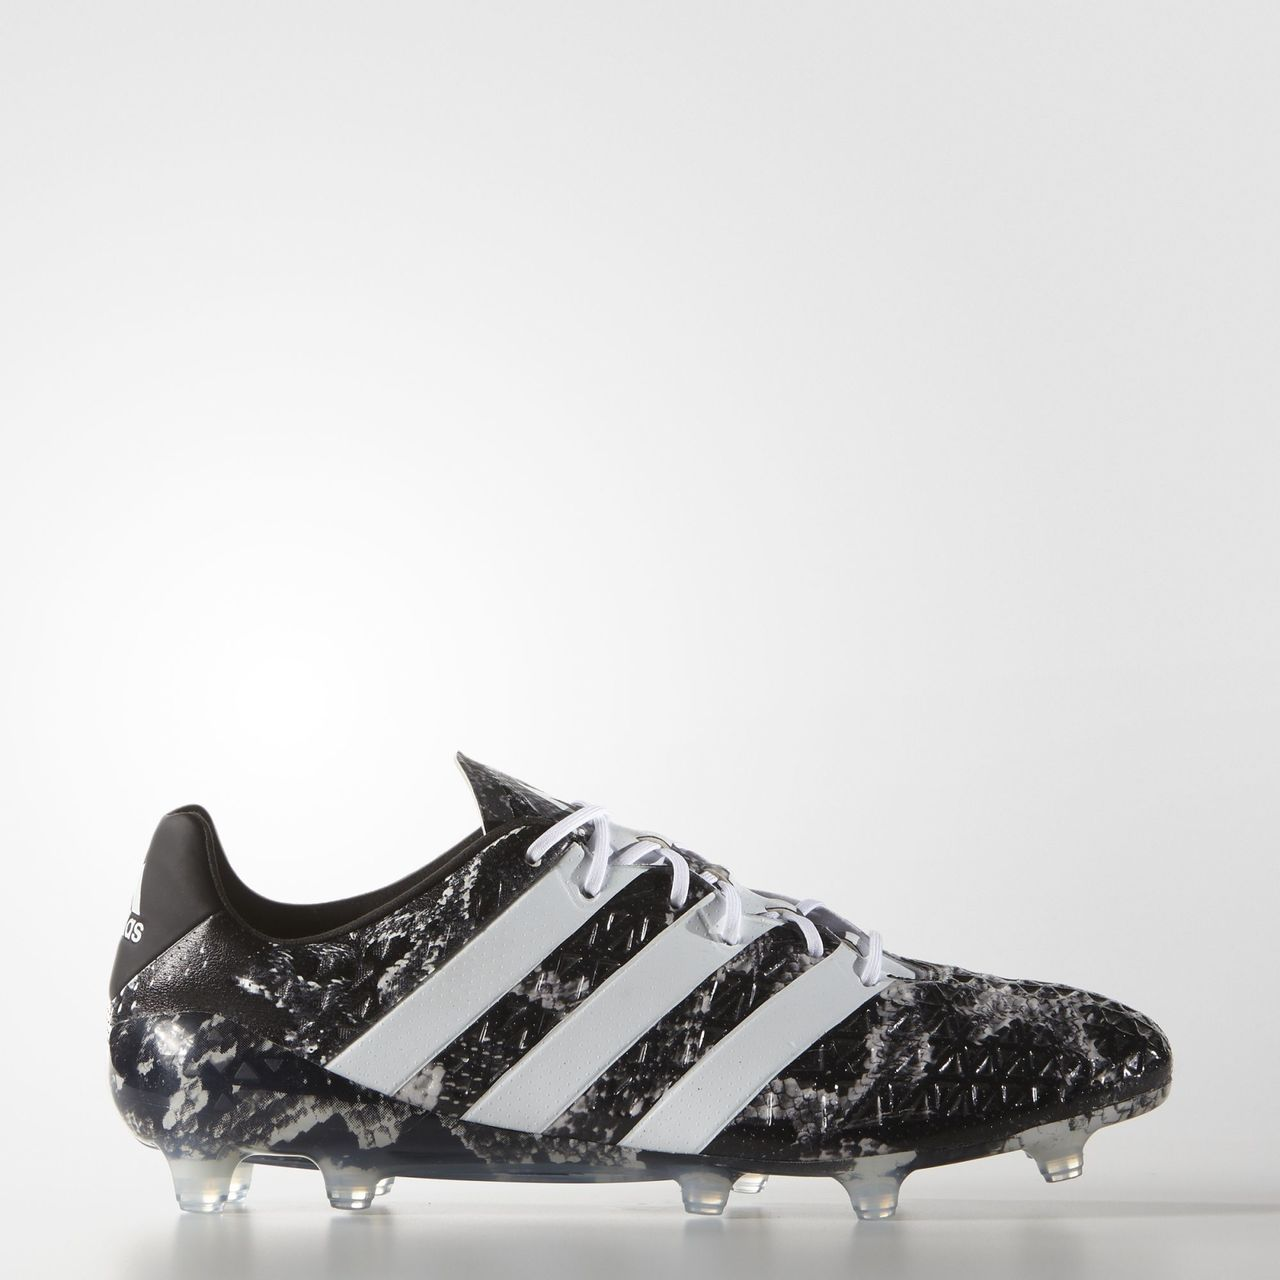 best service 3f680 ba8bb Adidas Ace 16.1 Deadly Focus Firm Ground Boots - Core Black ...